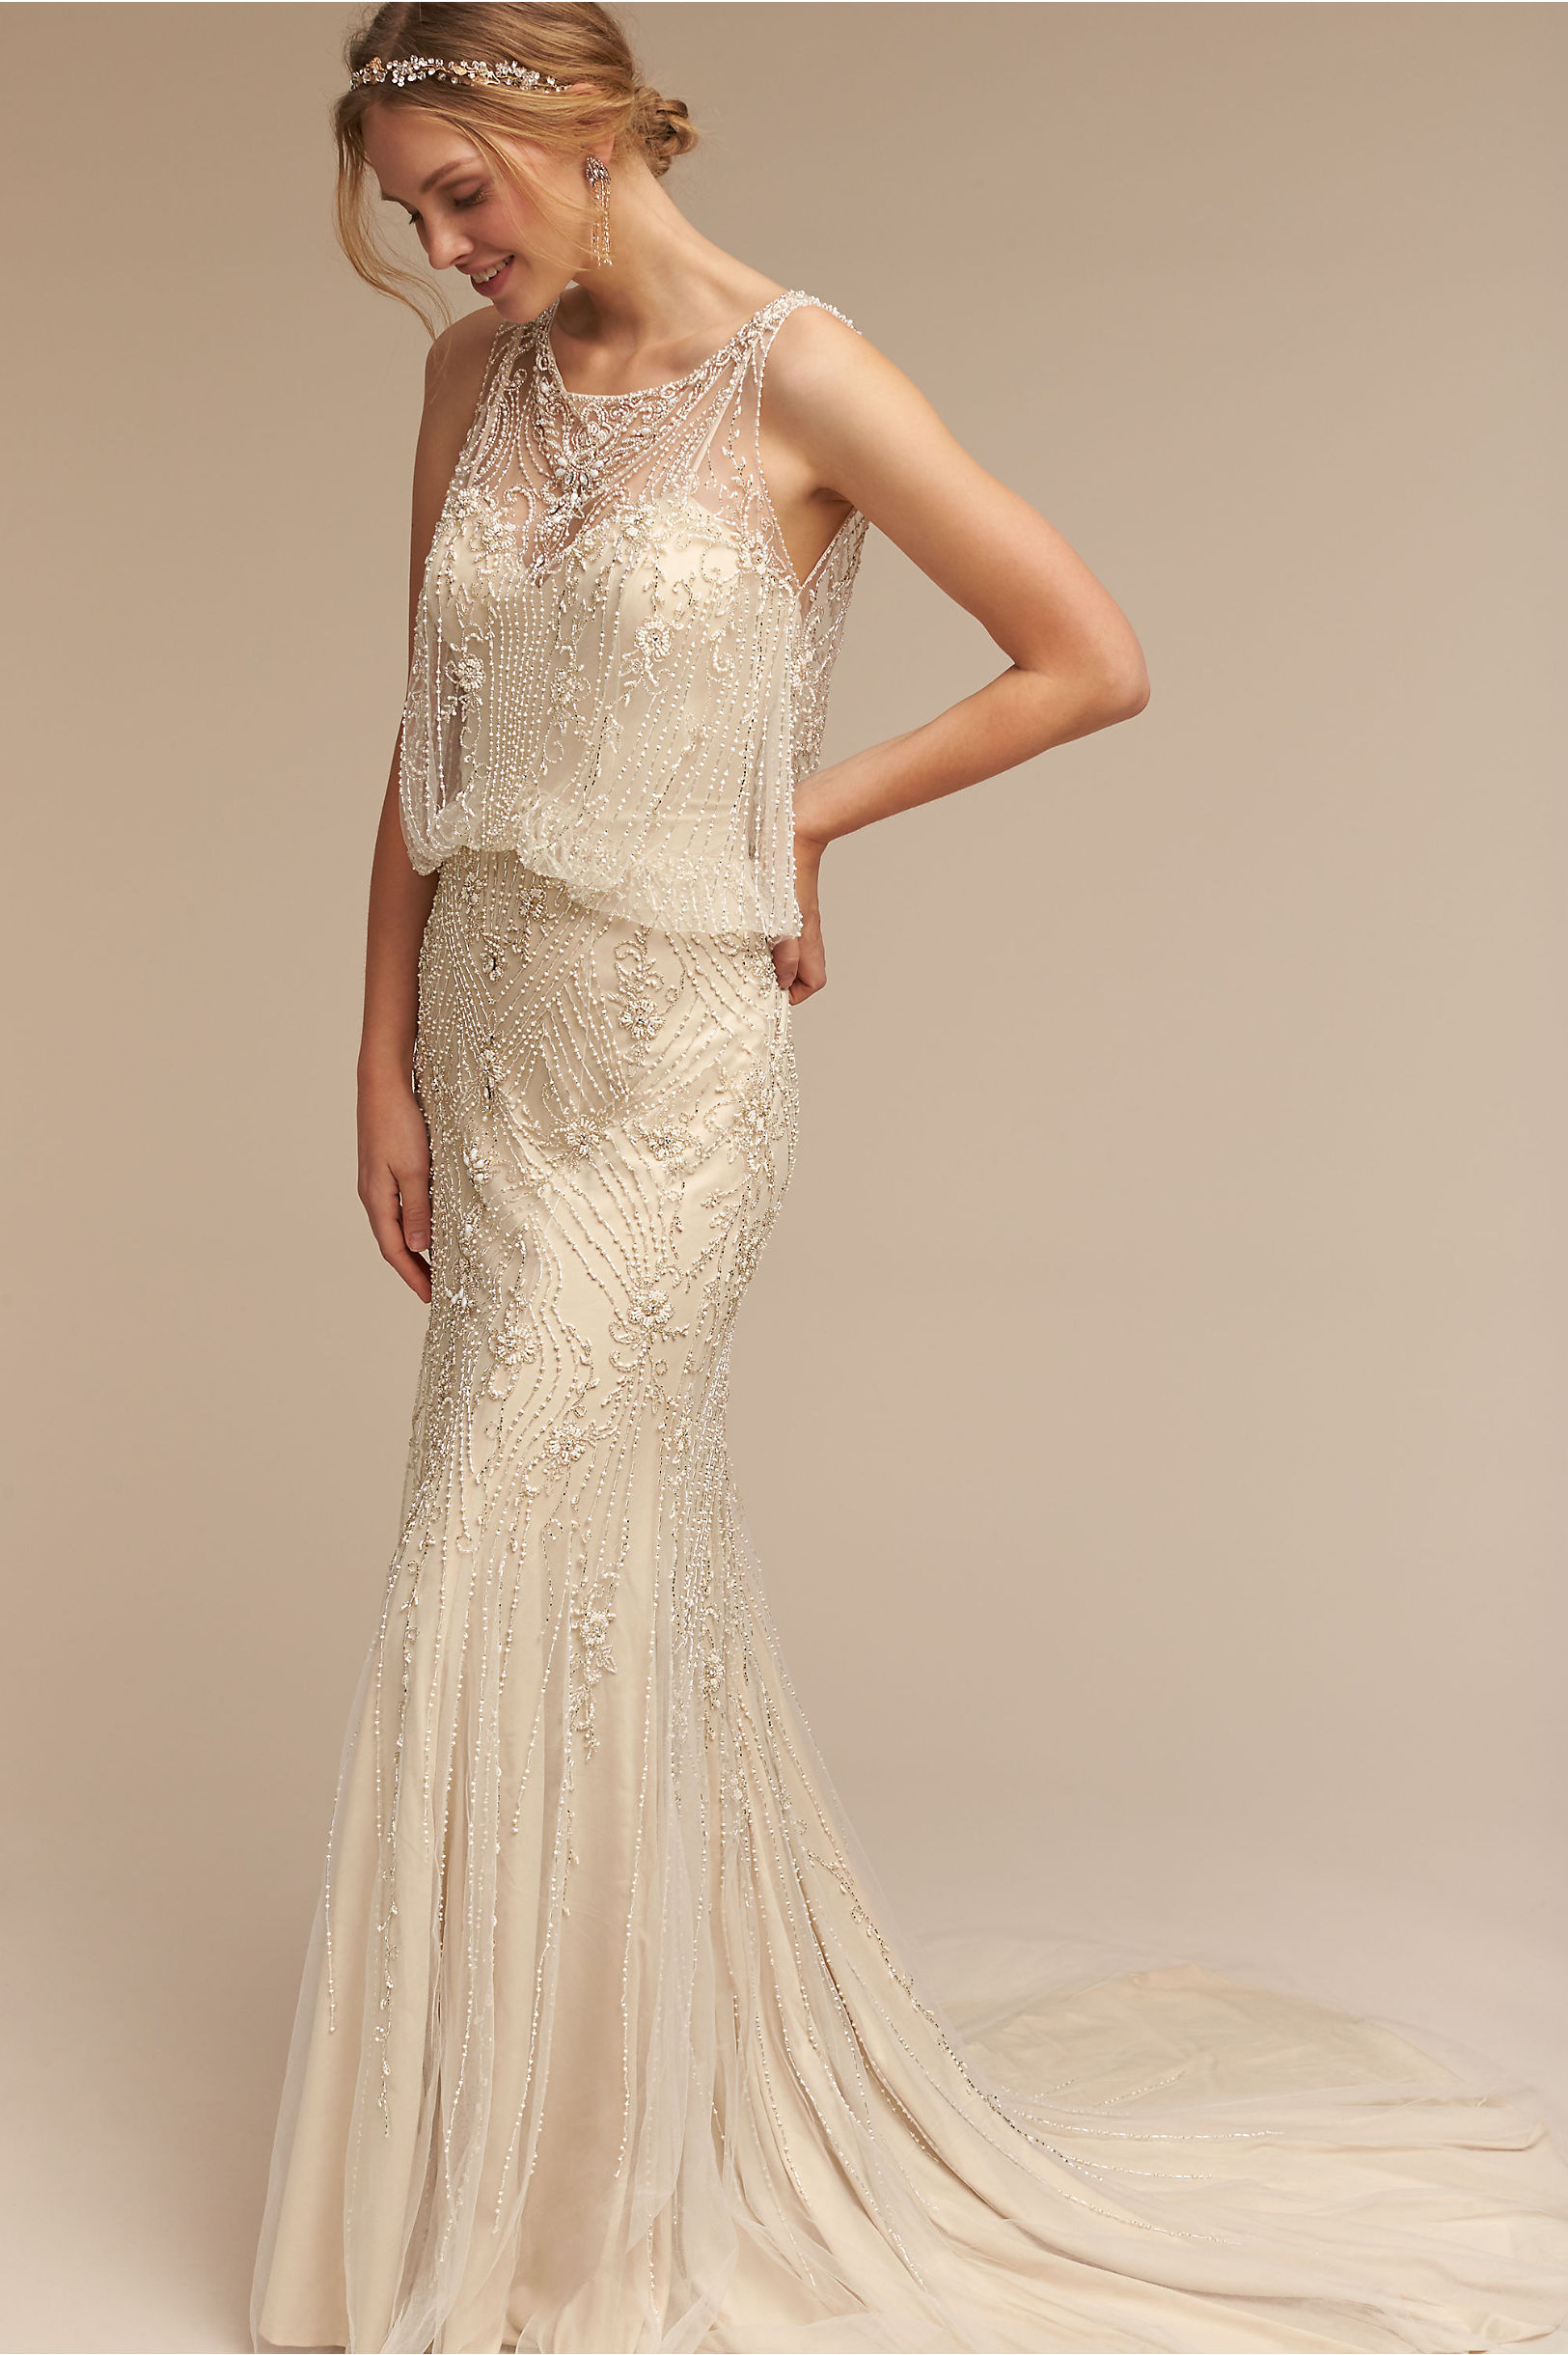 buy wedding dress online wedding gowns A model in a beaded wedding gown